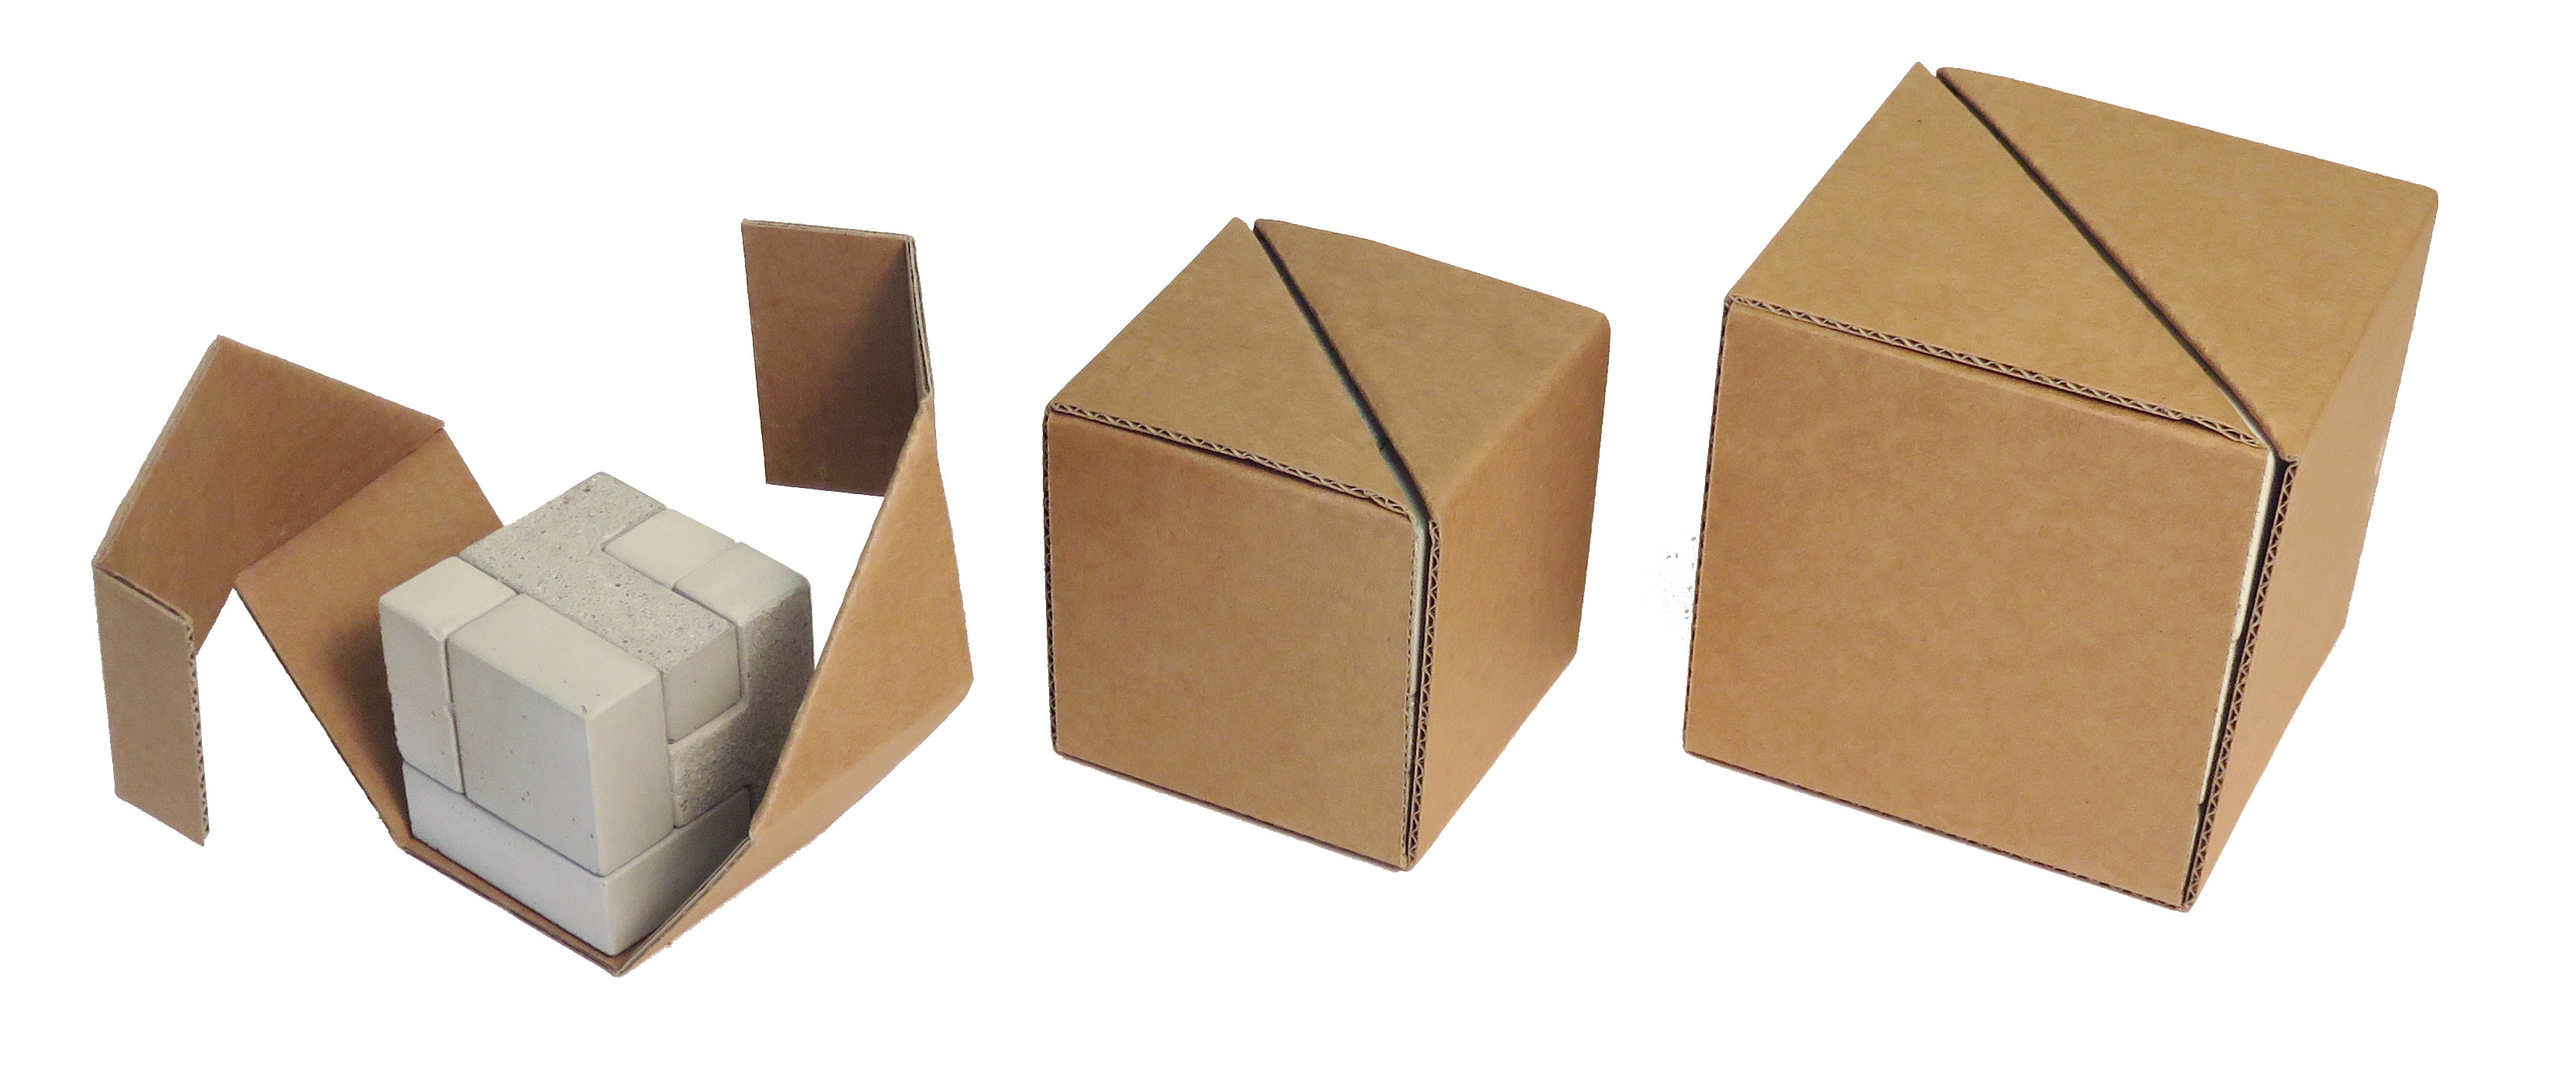 concrete puzzle Cube packaging